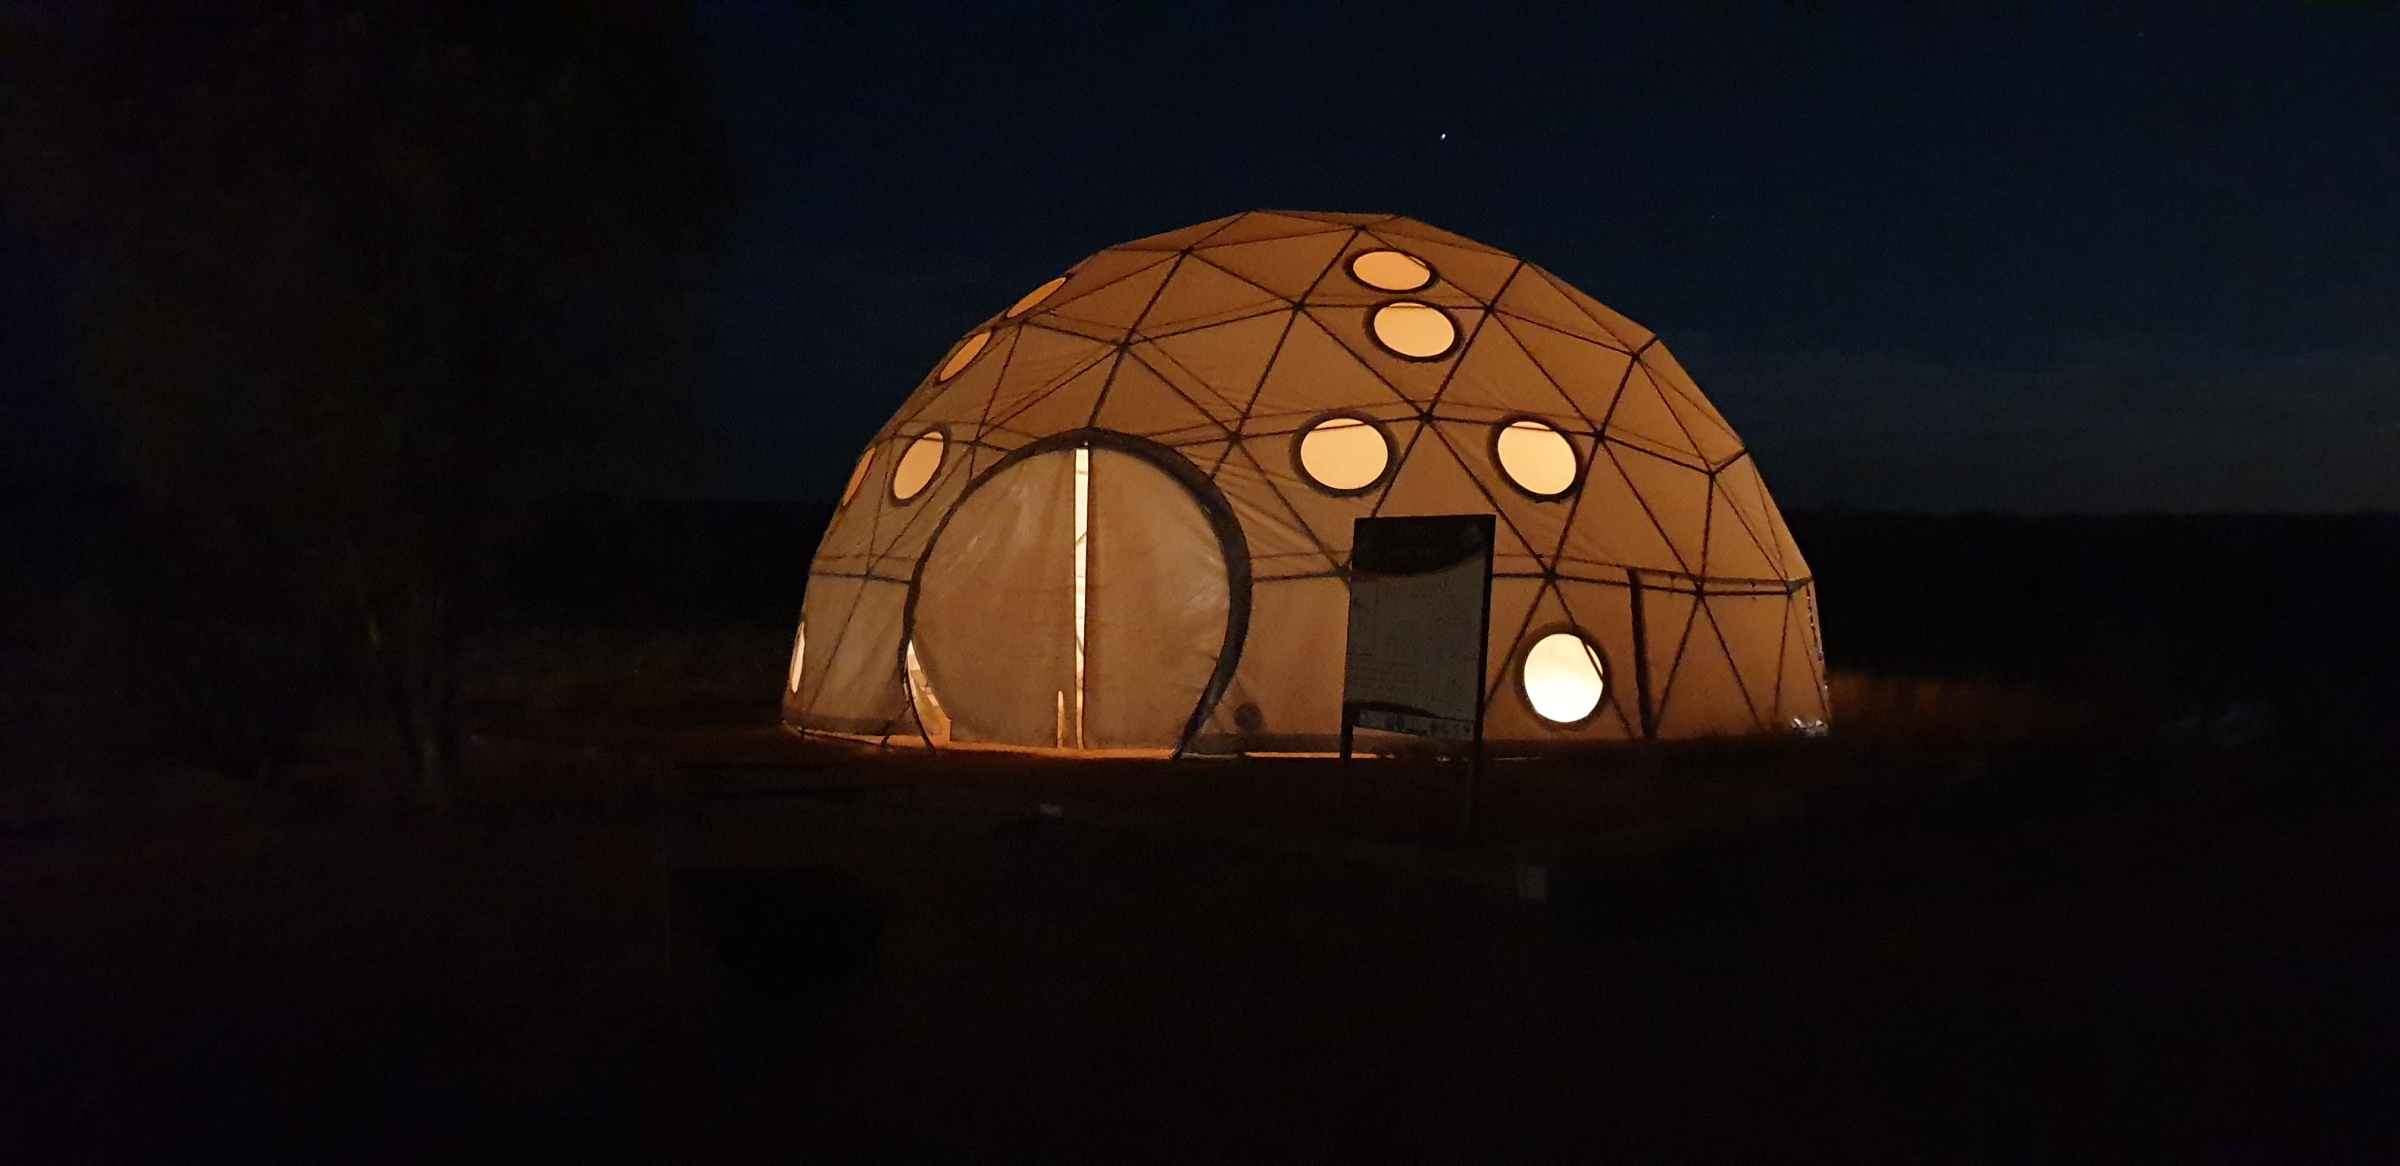 A large domed tent lit up from the inside with circles cut into the panels enabling those inside to view the outside sky.